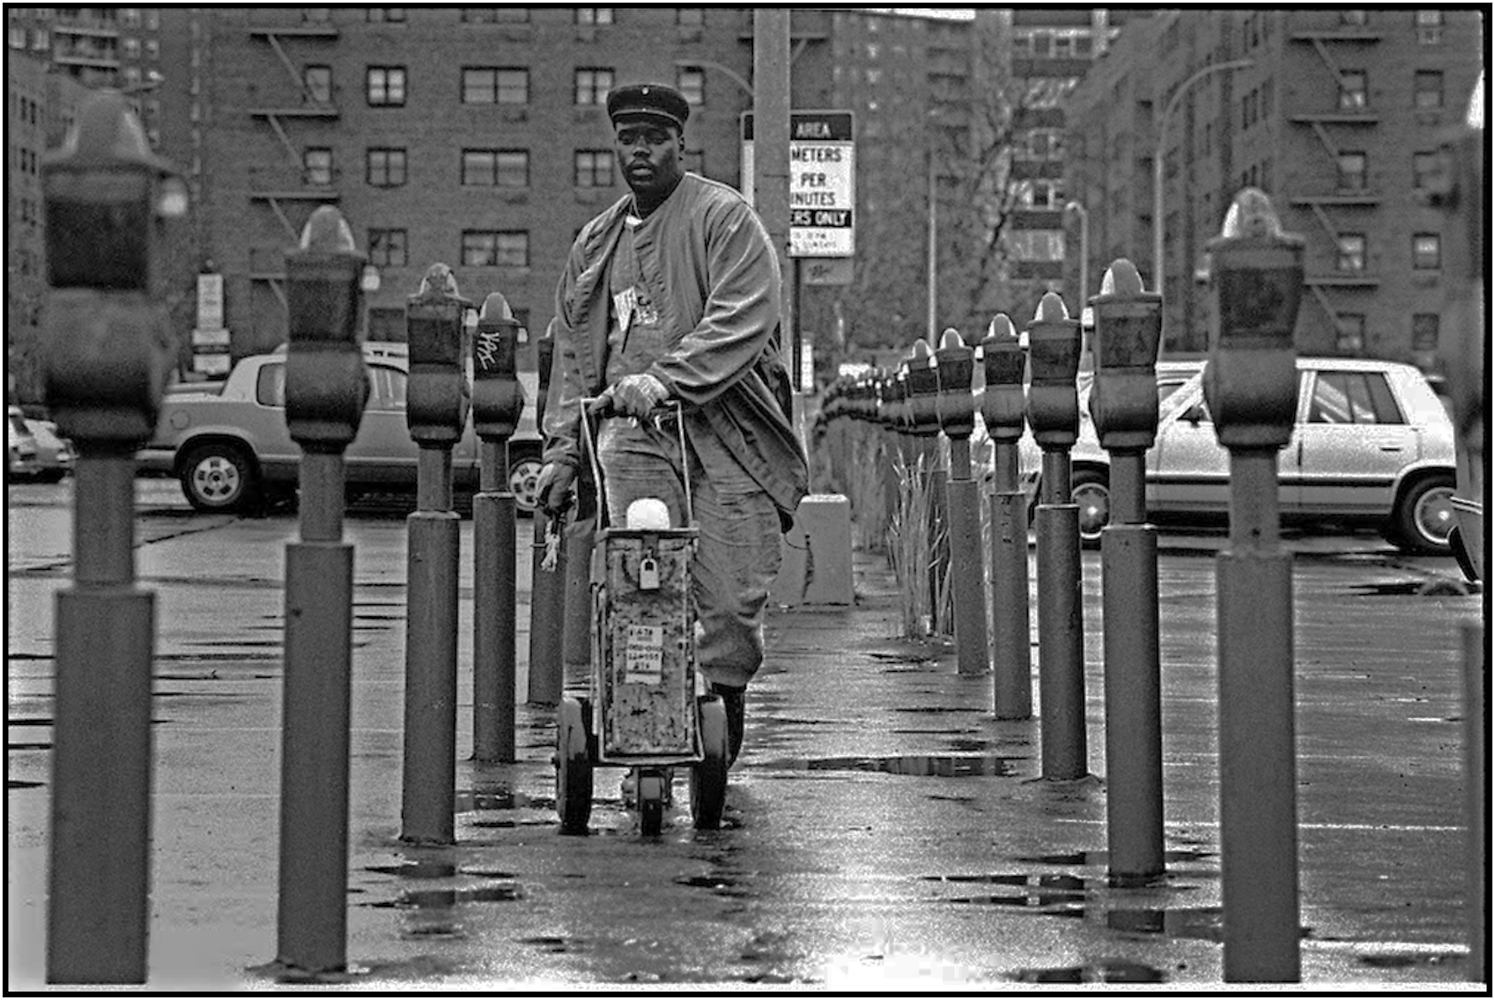 Keith Rhem, a parking meter service worker, collects quarters in a Queens municipal parking lot. 1990.